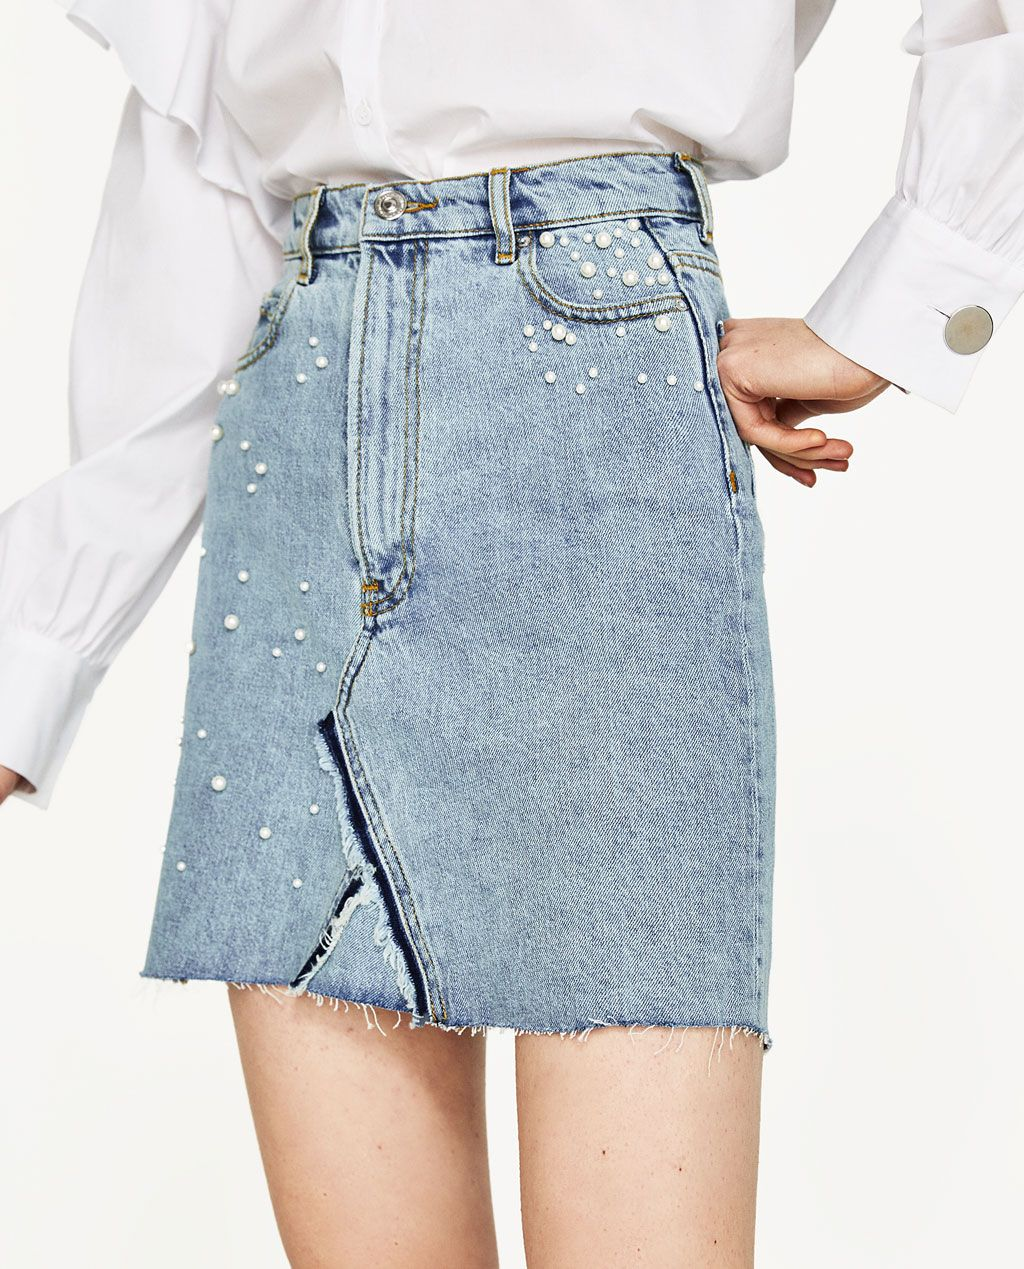 9460145d83 Image 2 of DENIM SKIRT WITH PEARL DETAILS from Zara | DENIM in 2019 ...